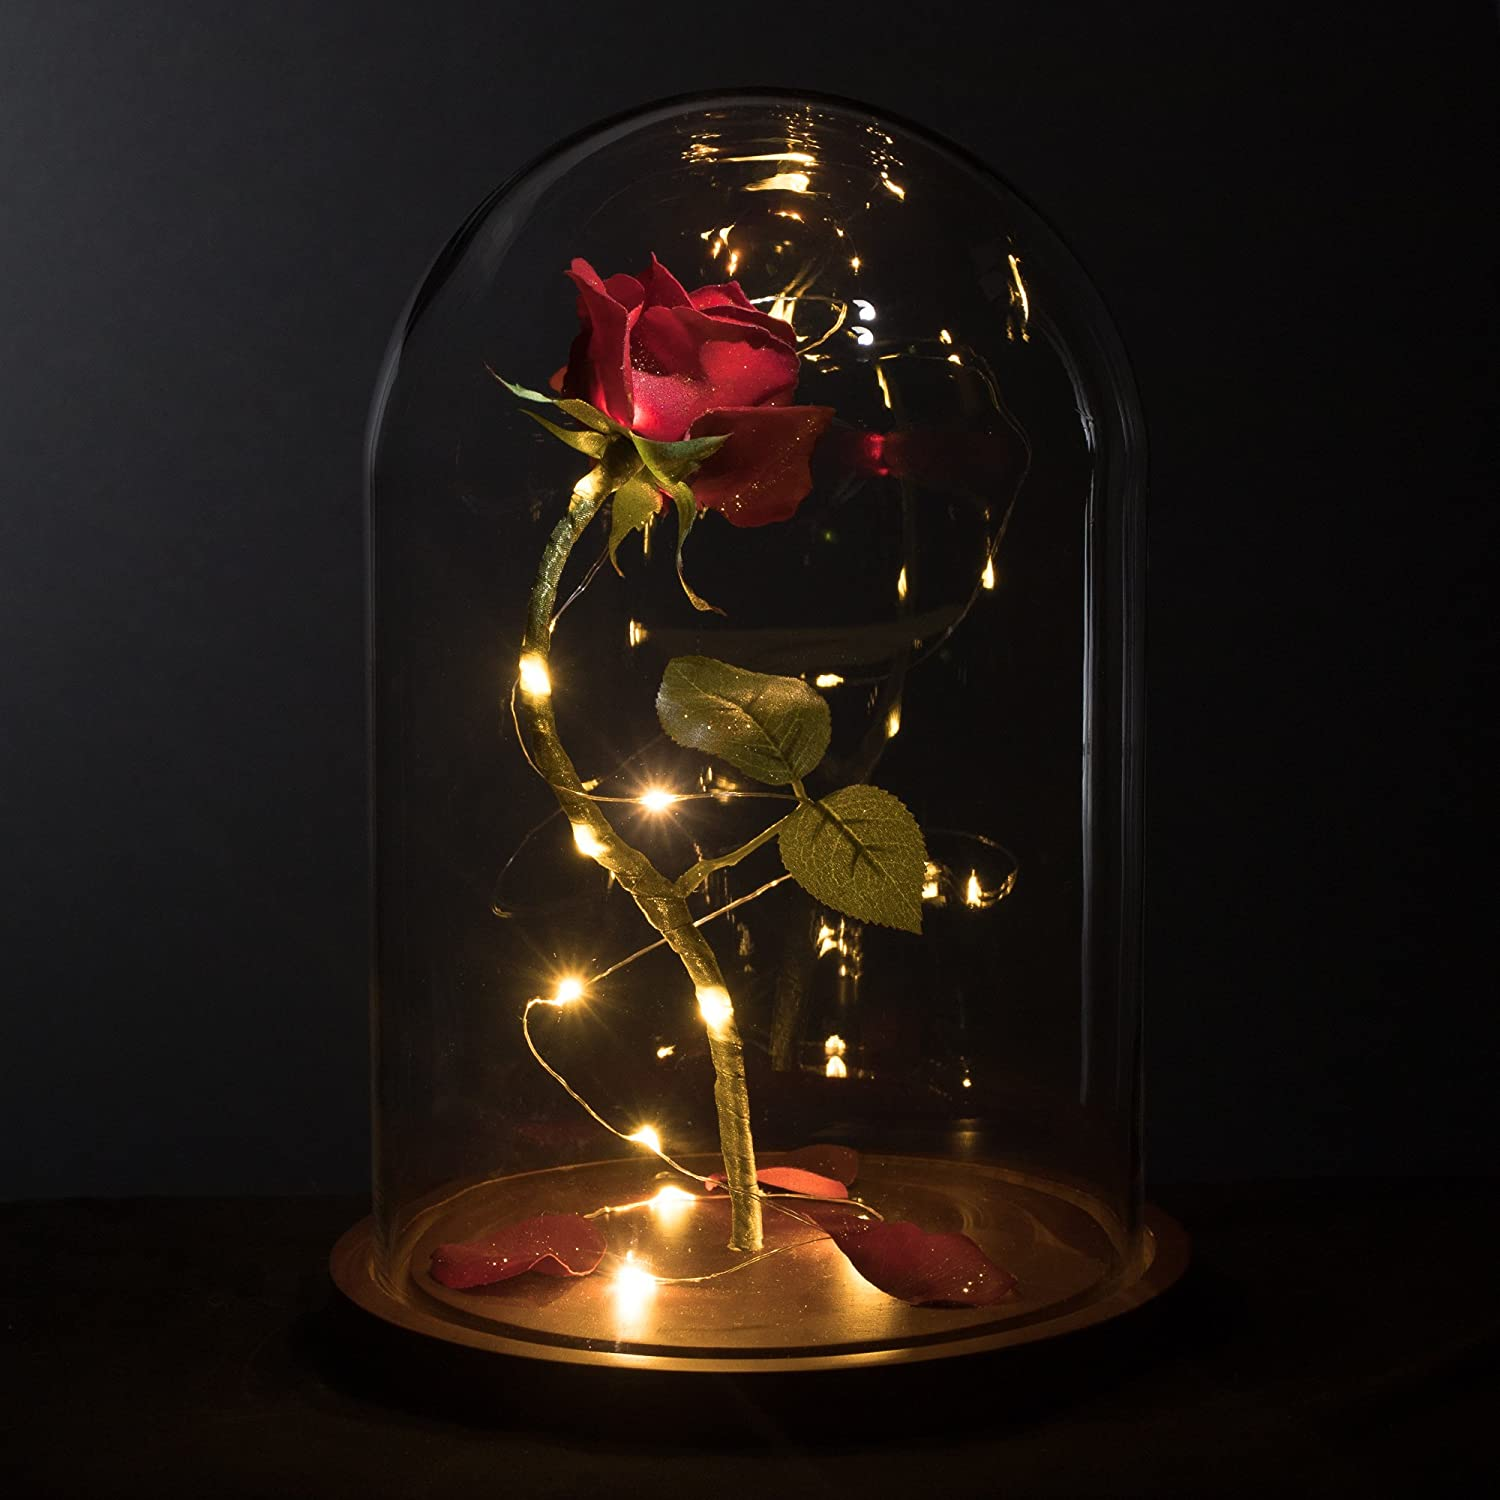 Amazon Com Magicprincesswhitney Enchanted Rose Life Sized 13 Led Beauty And The Beast Rose Lasts Forever In Glass Dome Belle Wedding Anniversary Christmas Mother S Day Quinceanera Magic Princess Whitney Furniture Decor